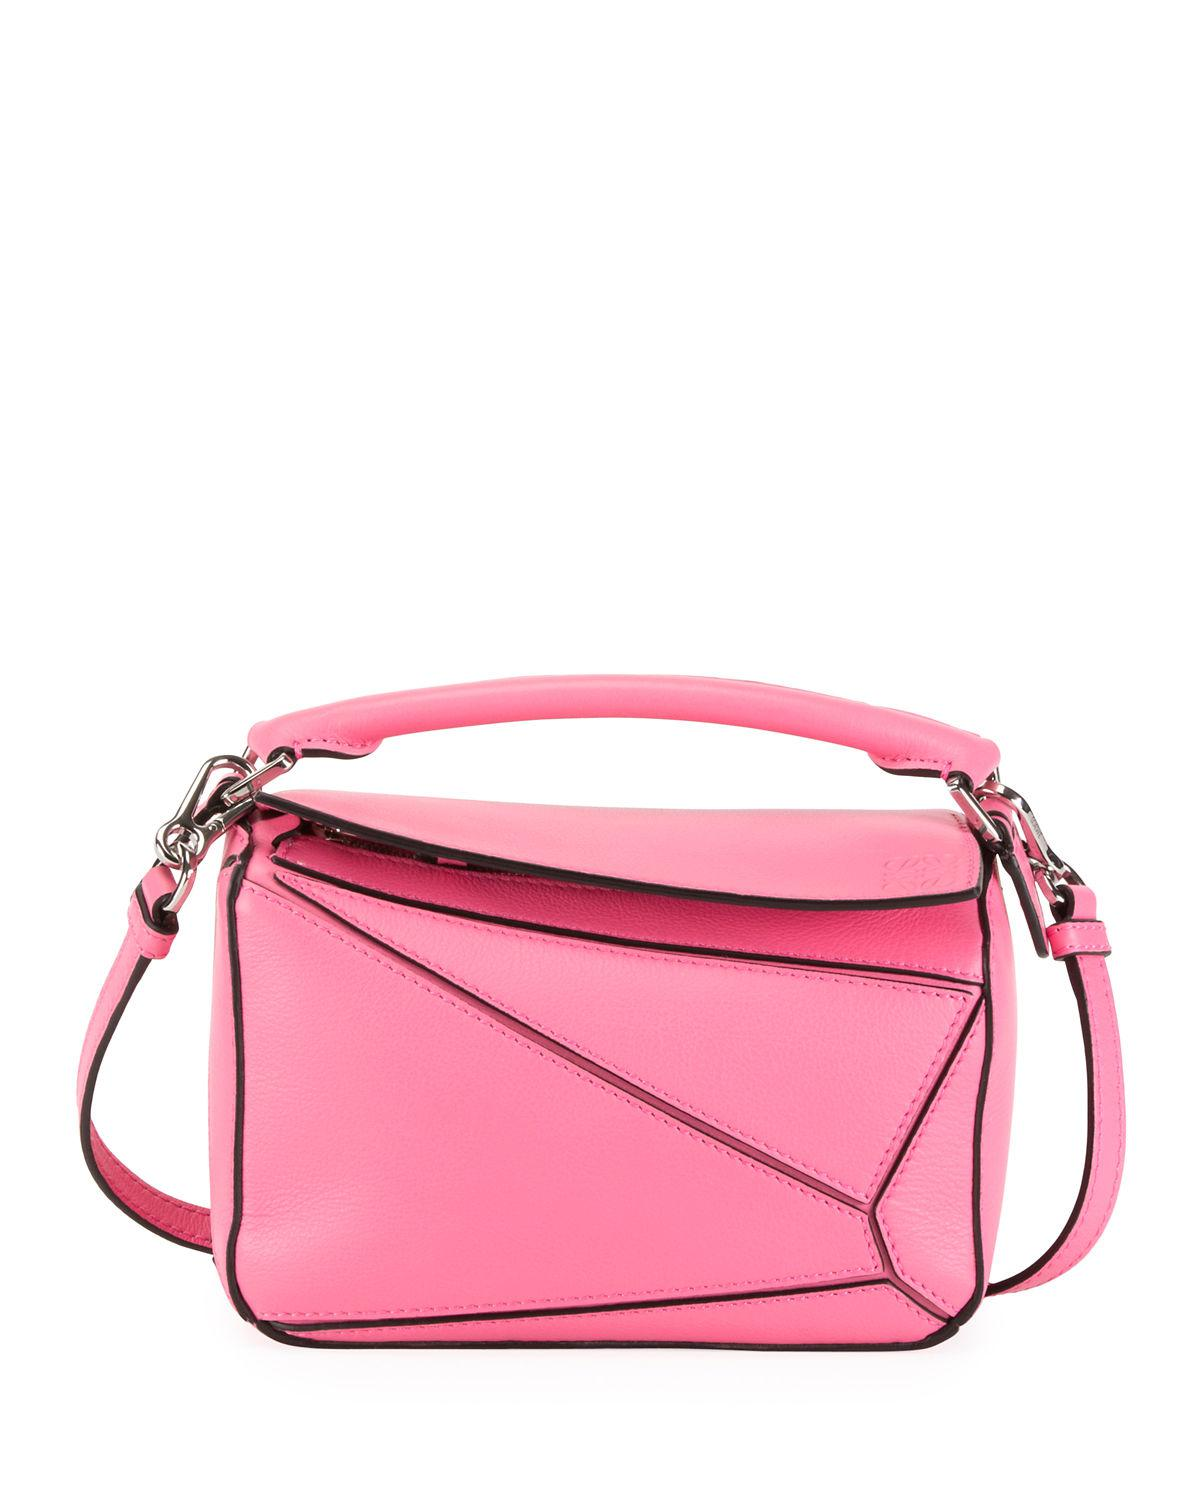 a98869189a46 Loewe Mini Puzzle Calfskin Leather Bag - Pink In Wild Rose